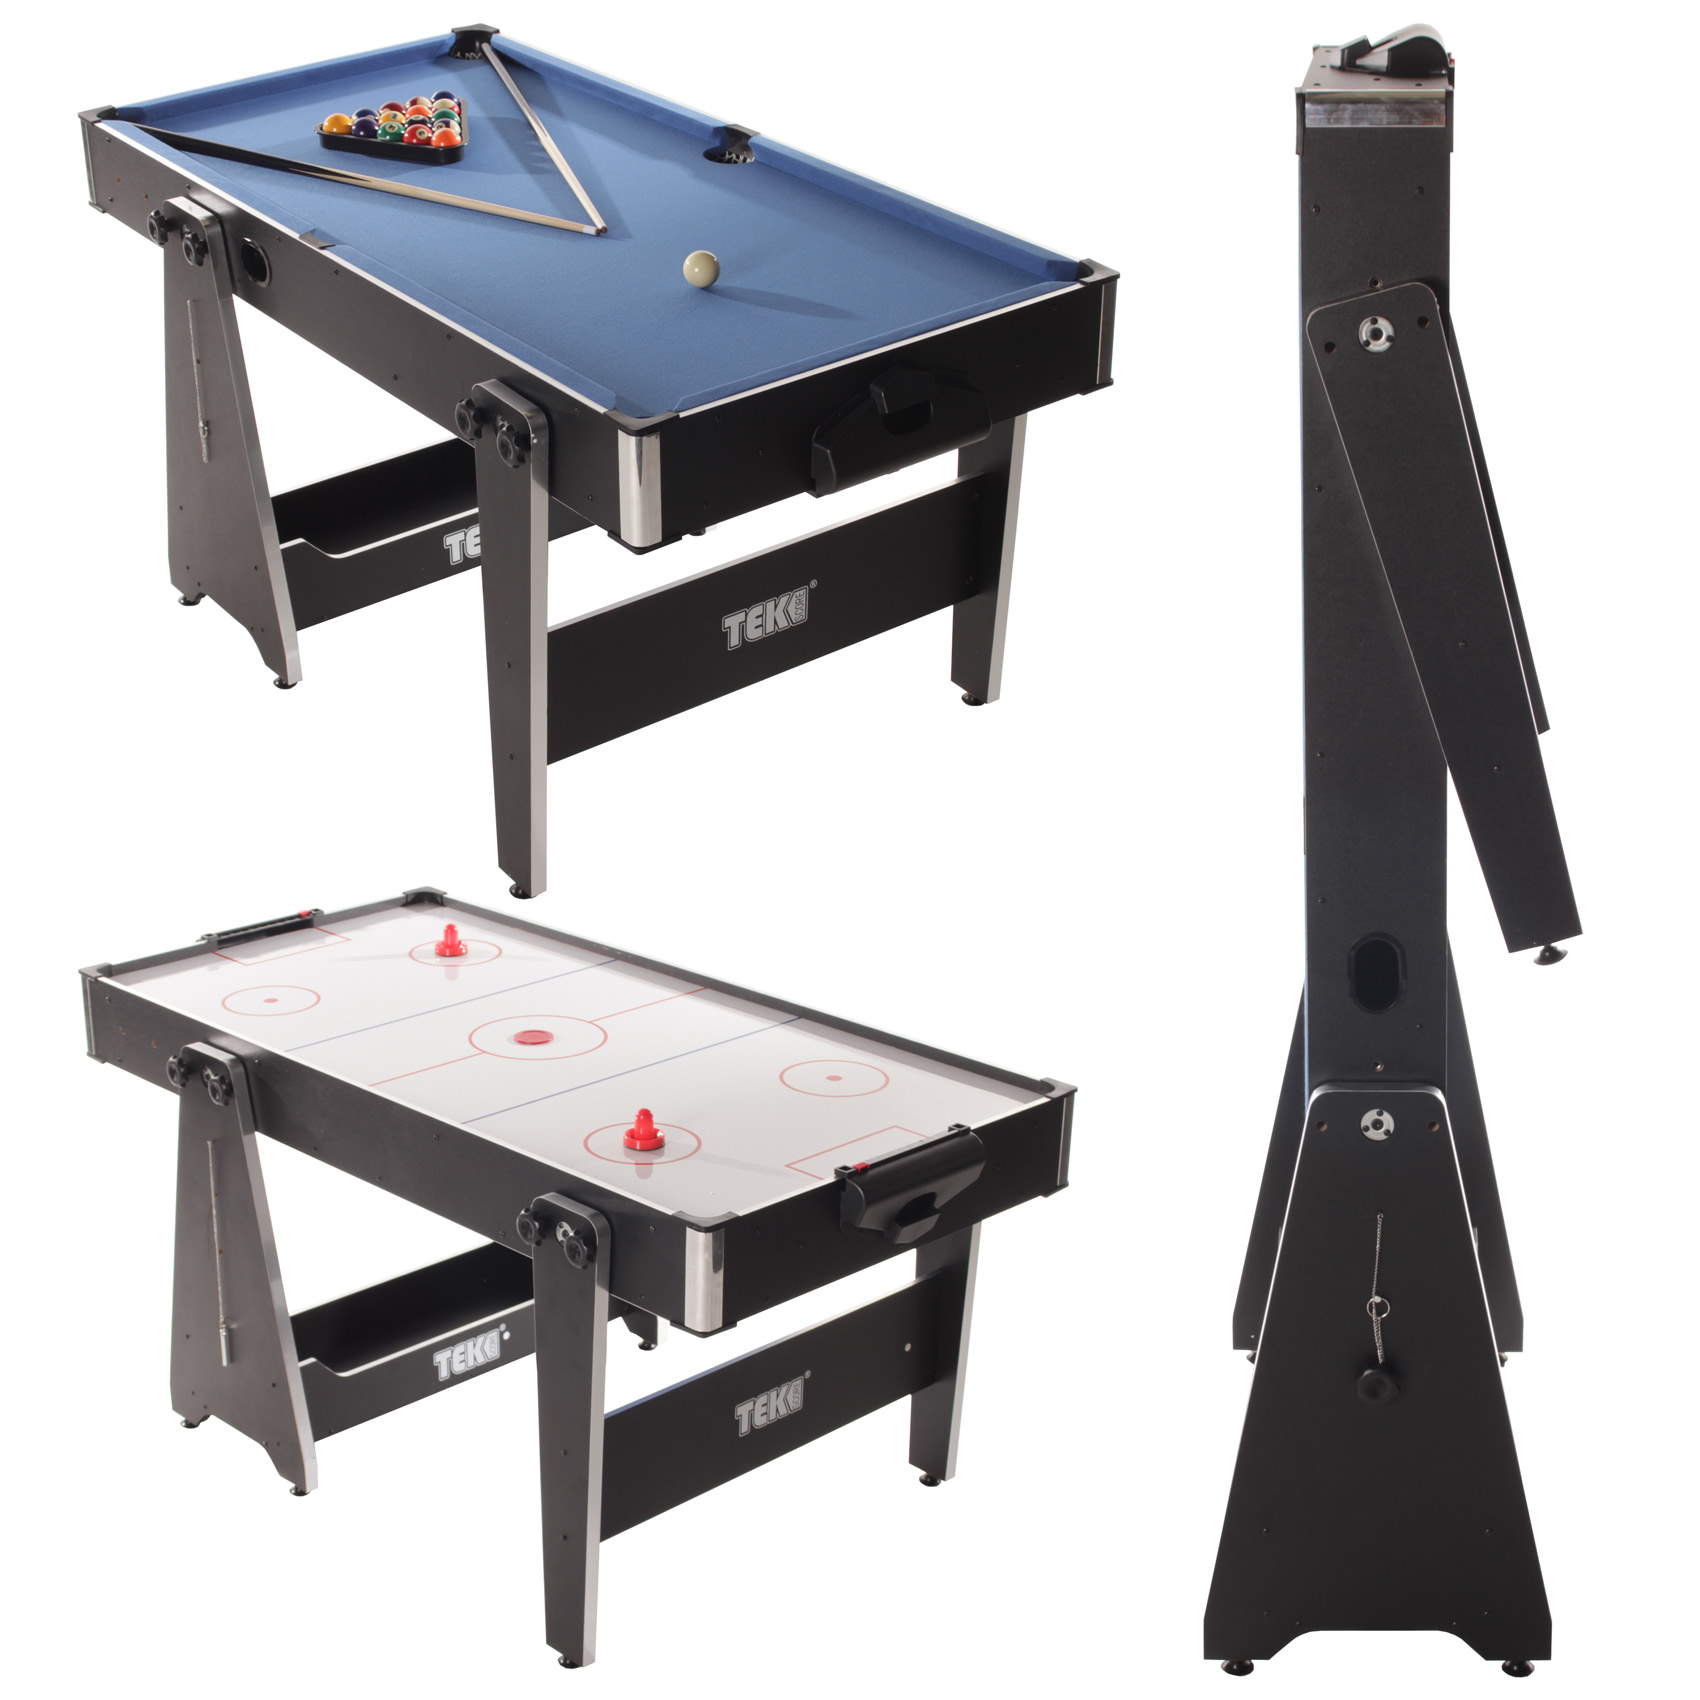 Tekscore 5 foot folding leg multi games table liberty games for Table retractable